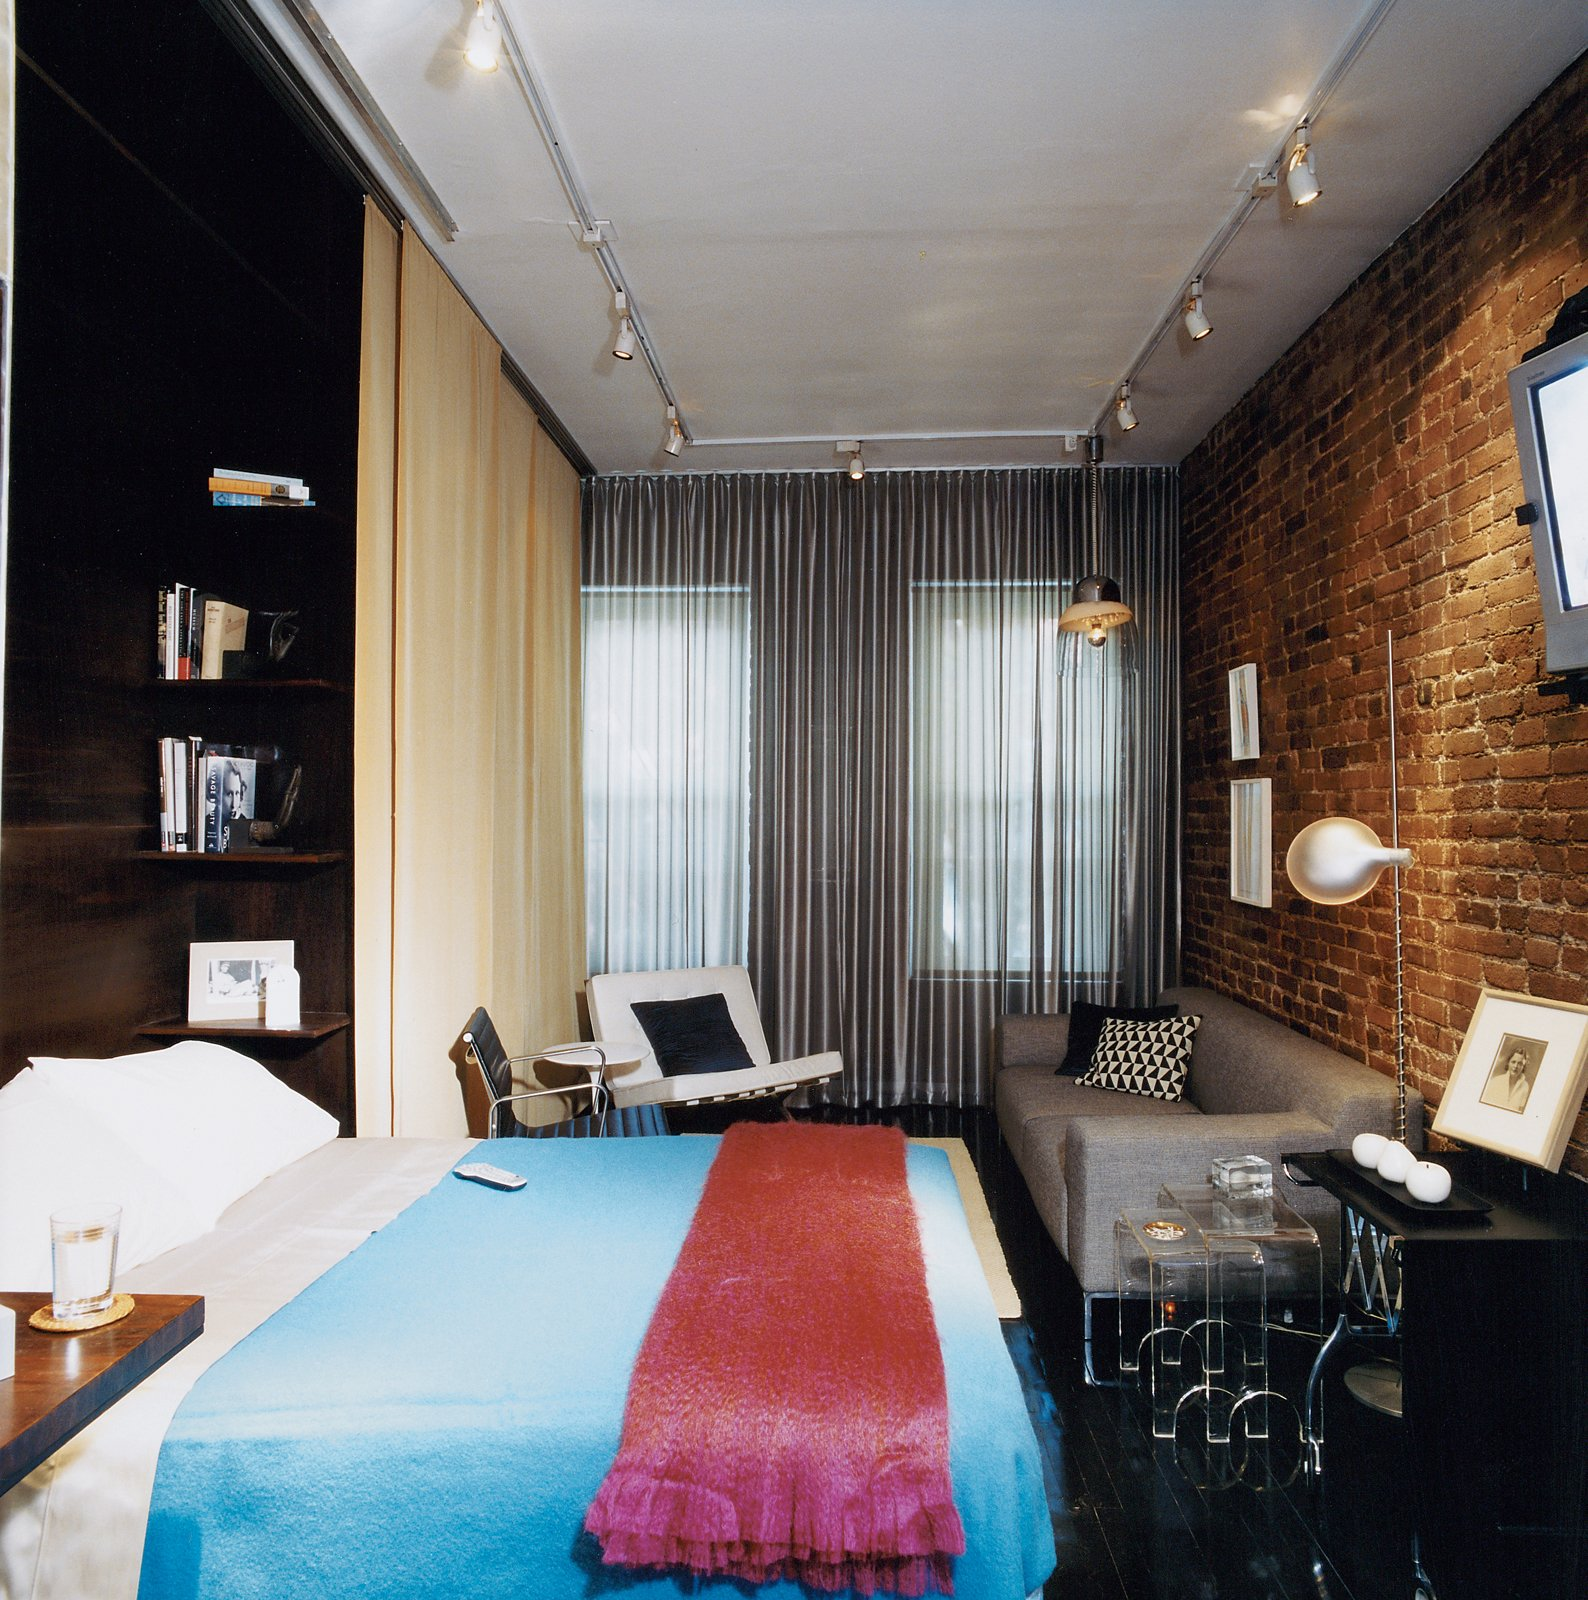 """""""I think of the bed as intimate space,"""" Hughston says, """"and putting the bed away—having it out of sight when not in use—is satisfying."""" The custom-designed Murphy bed, concealed by day behind the gold curtain is well built; it's ergonomically easy to lower and has a firm sleeping surface."""